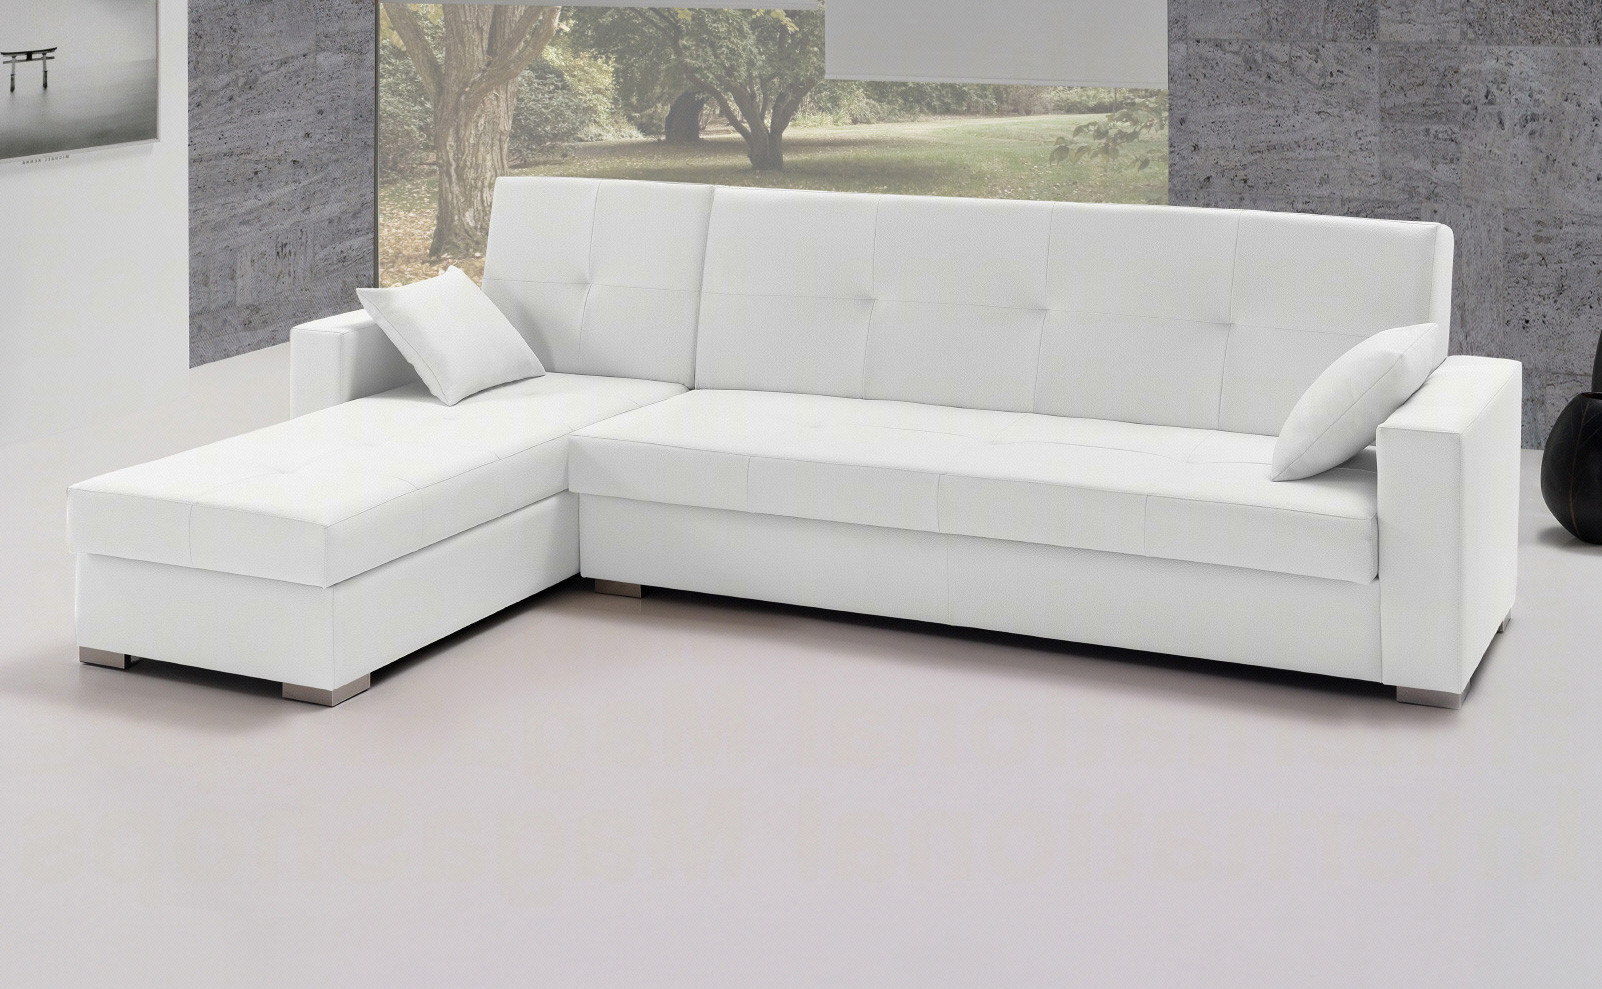 Chaise Longue Cama Baratos Brillante sofas Chaise Longue Baratos sofa the Honoroak Of Chaise Longue Cama Baratos Magnífico sofás Chaise Longue Baratos Online